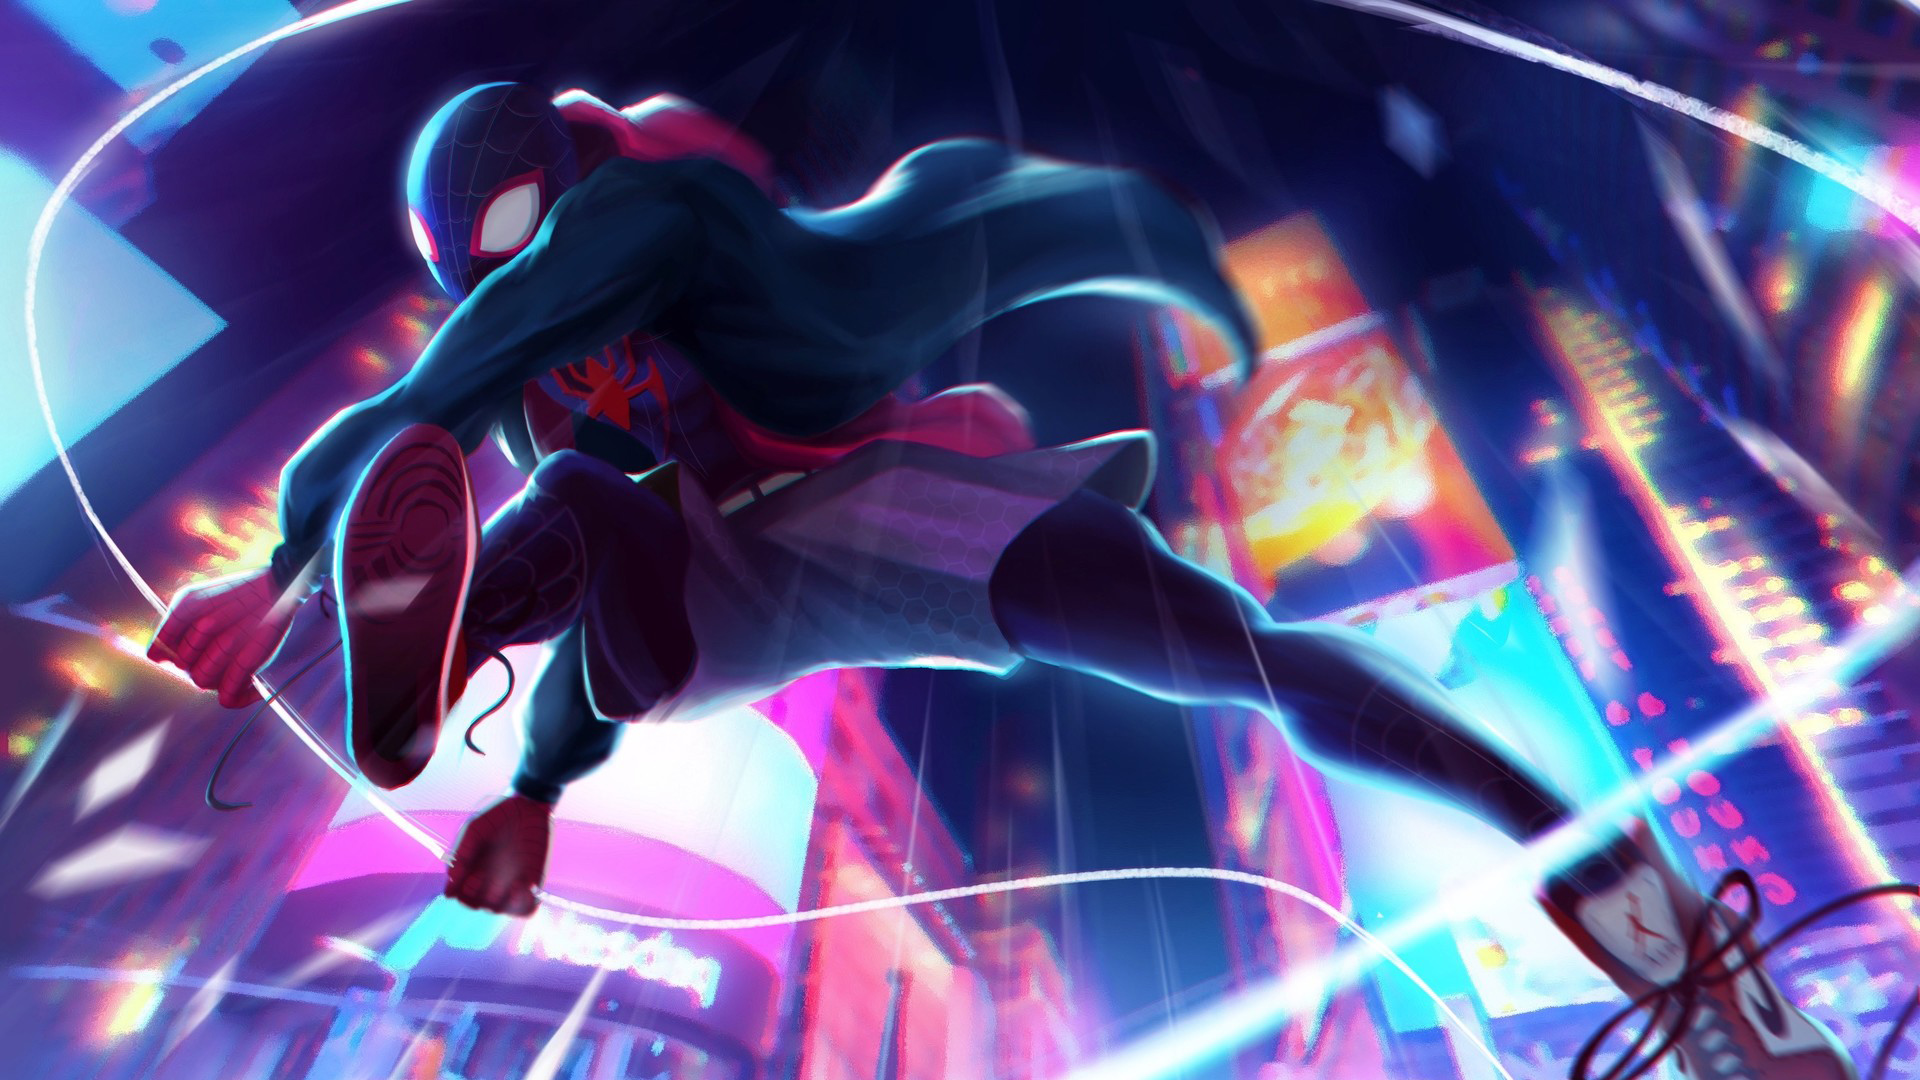 Spiderman Neon Wallpaper Posted By John Anderson